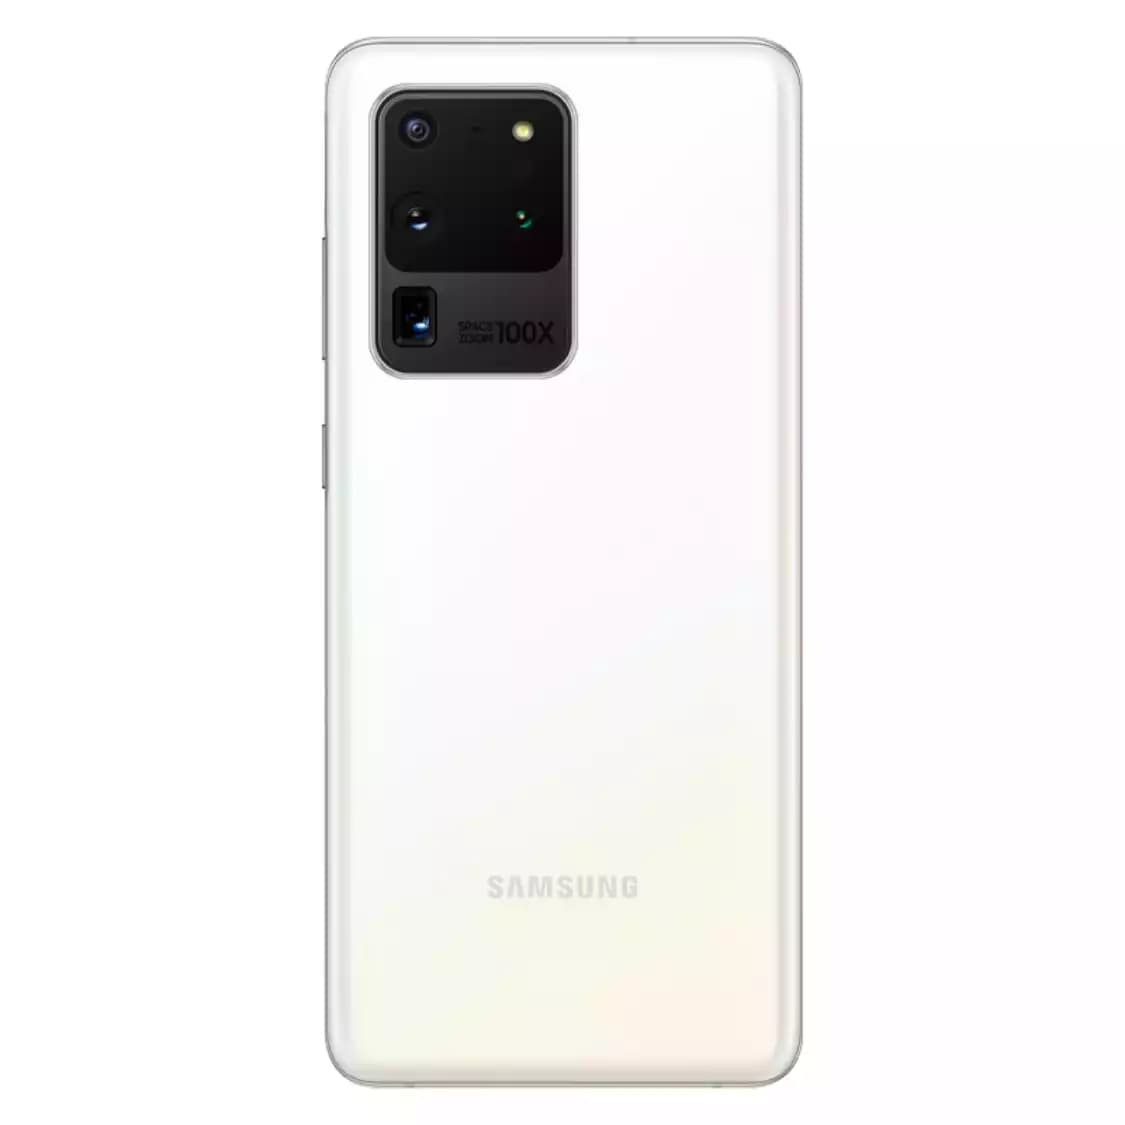 Galaxy S20 Ultra White Color Official Rendering